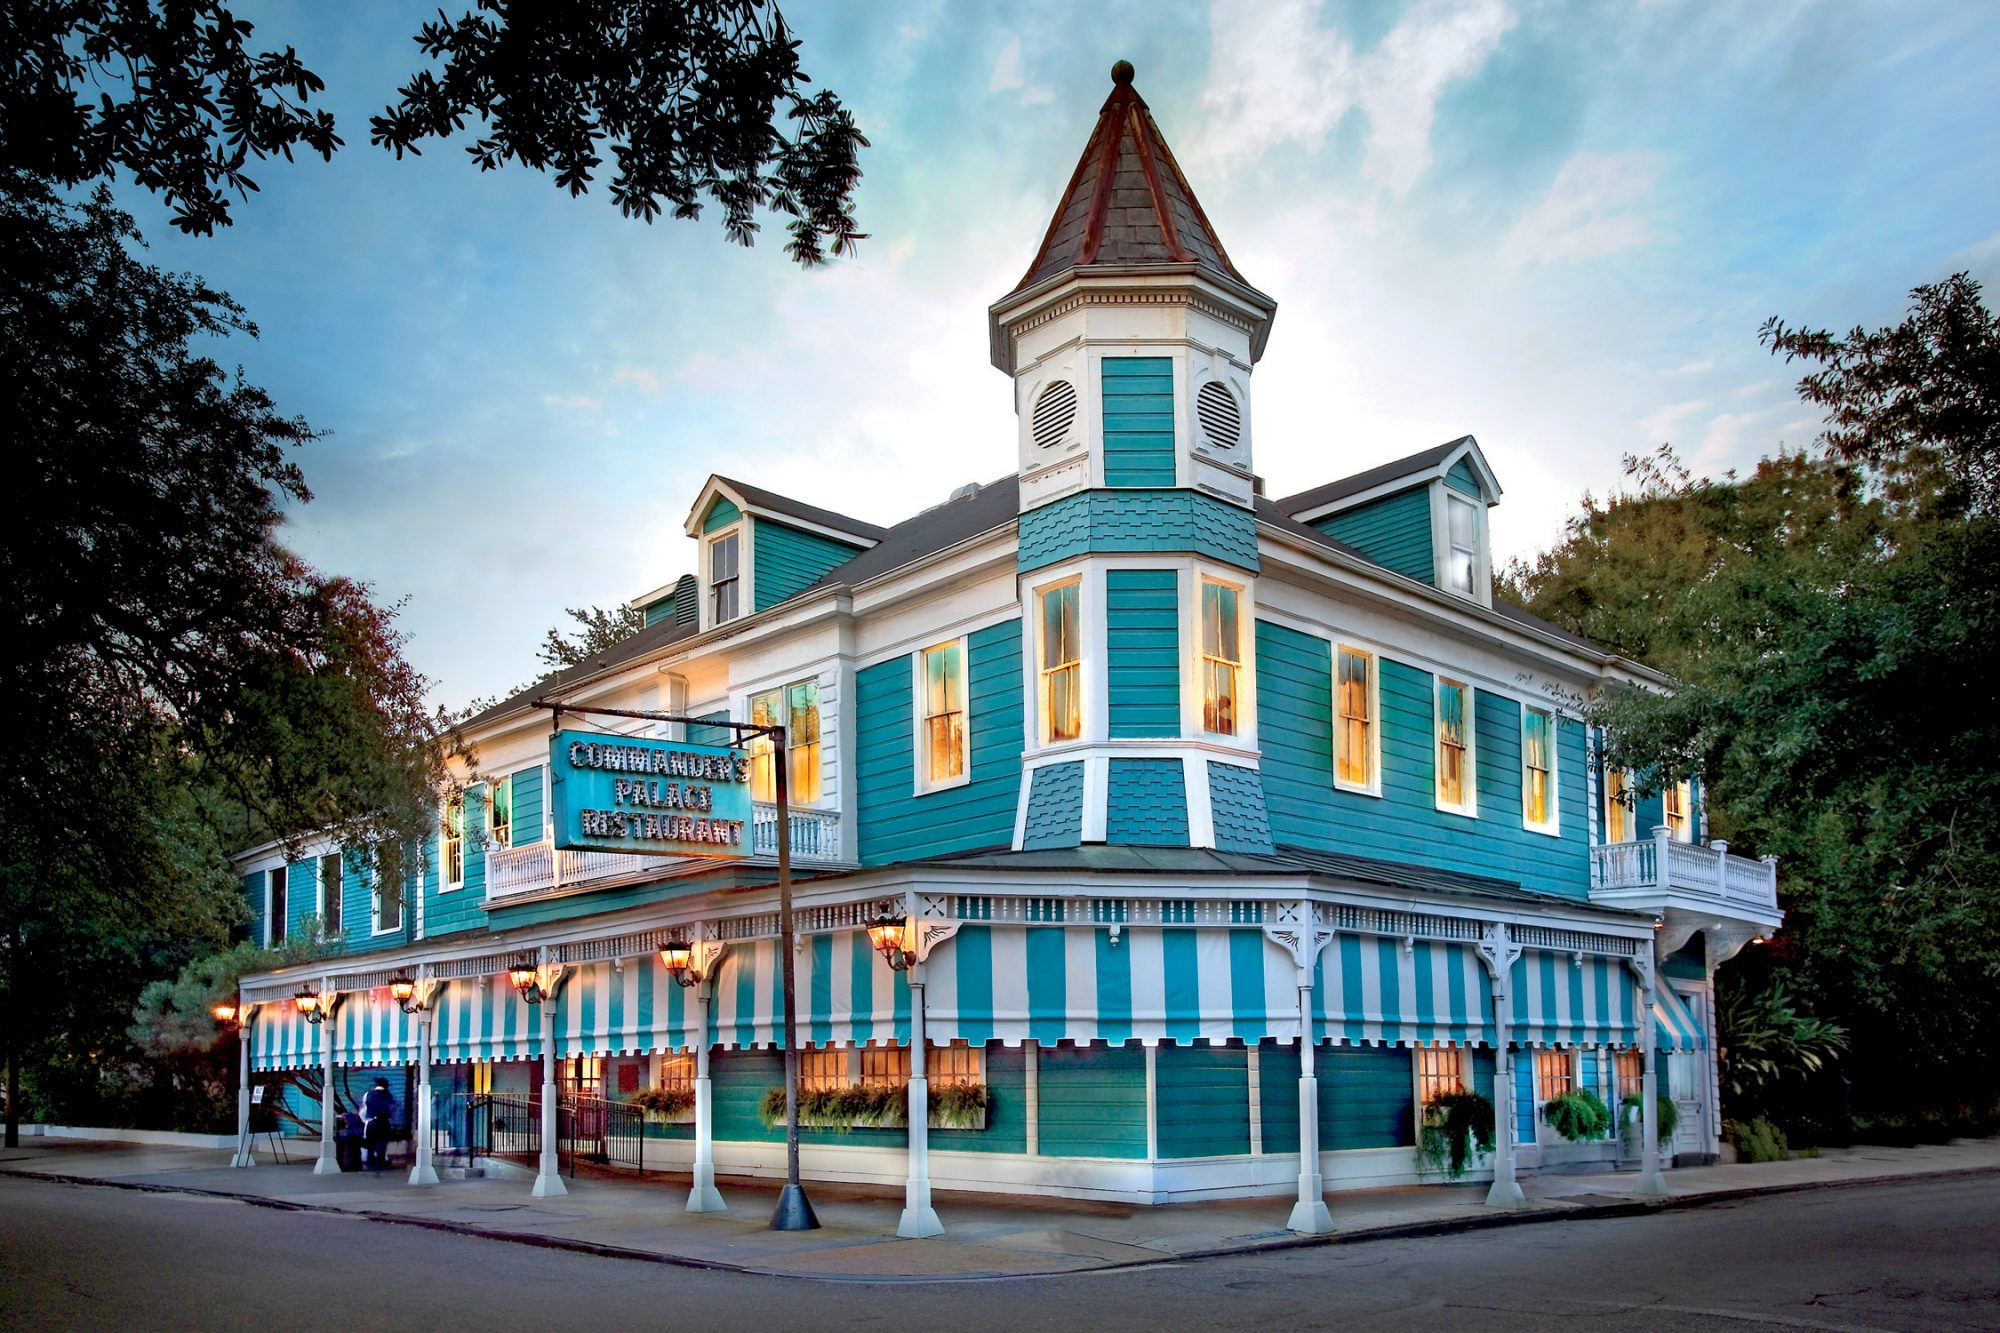 Commander's Palace in New Orleans, LA